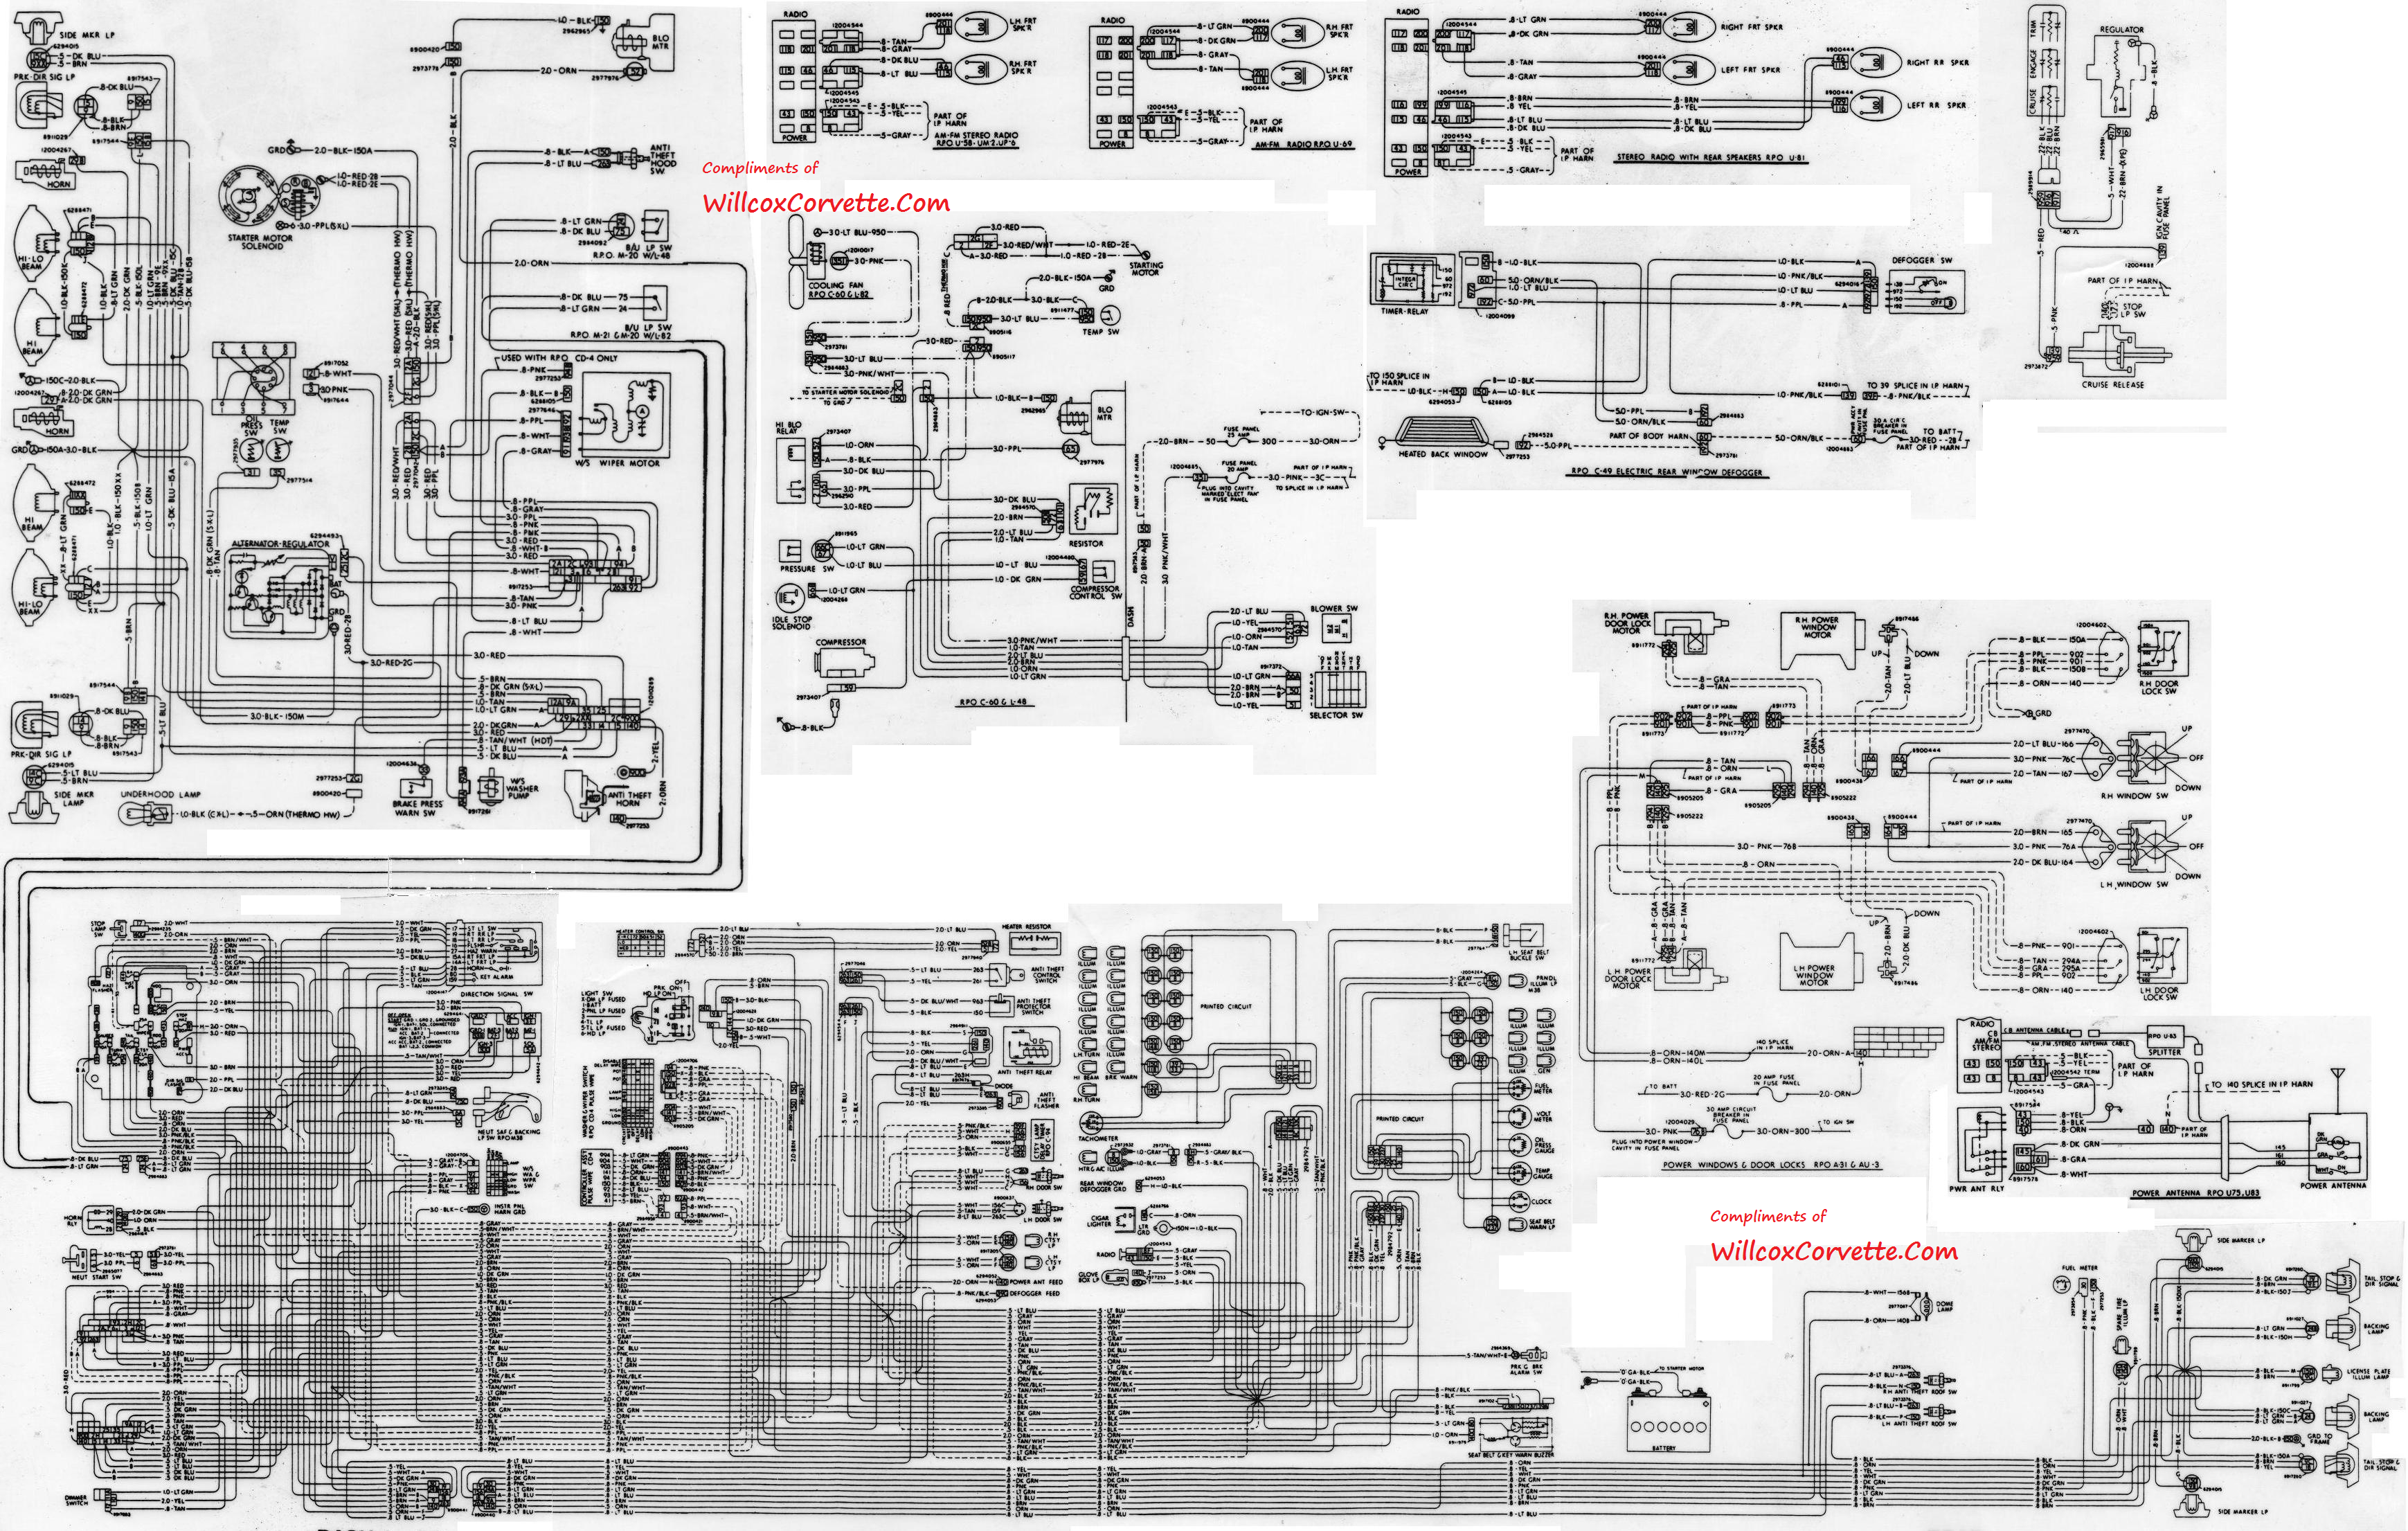 79 COMBINED TRACER SCHEMATIC c3 corvette wiring diagram radio wiring diagram \u2022 wiring diagrams 1977 corvette wiring diagram at gsmportal.co